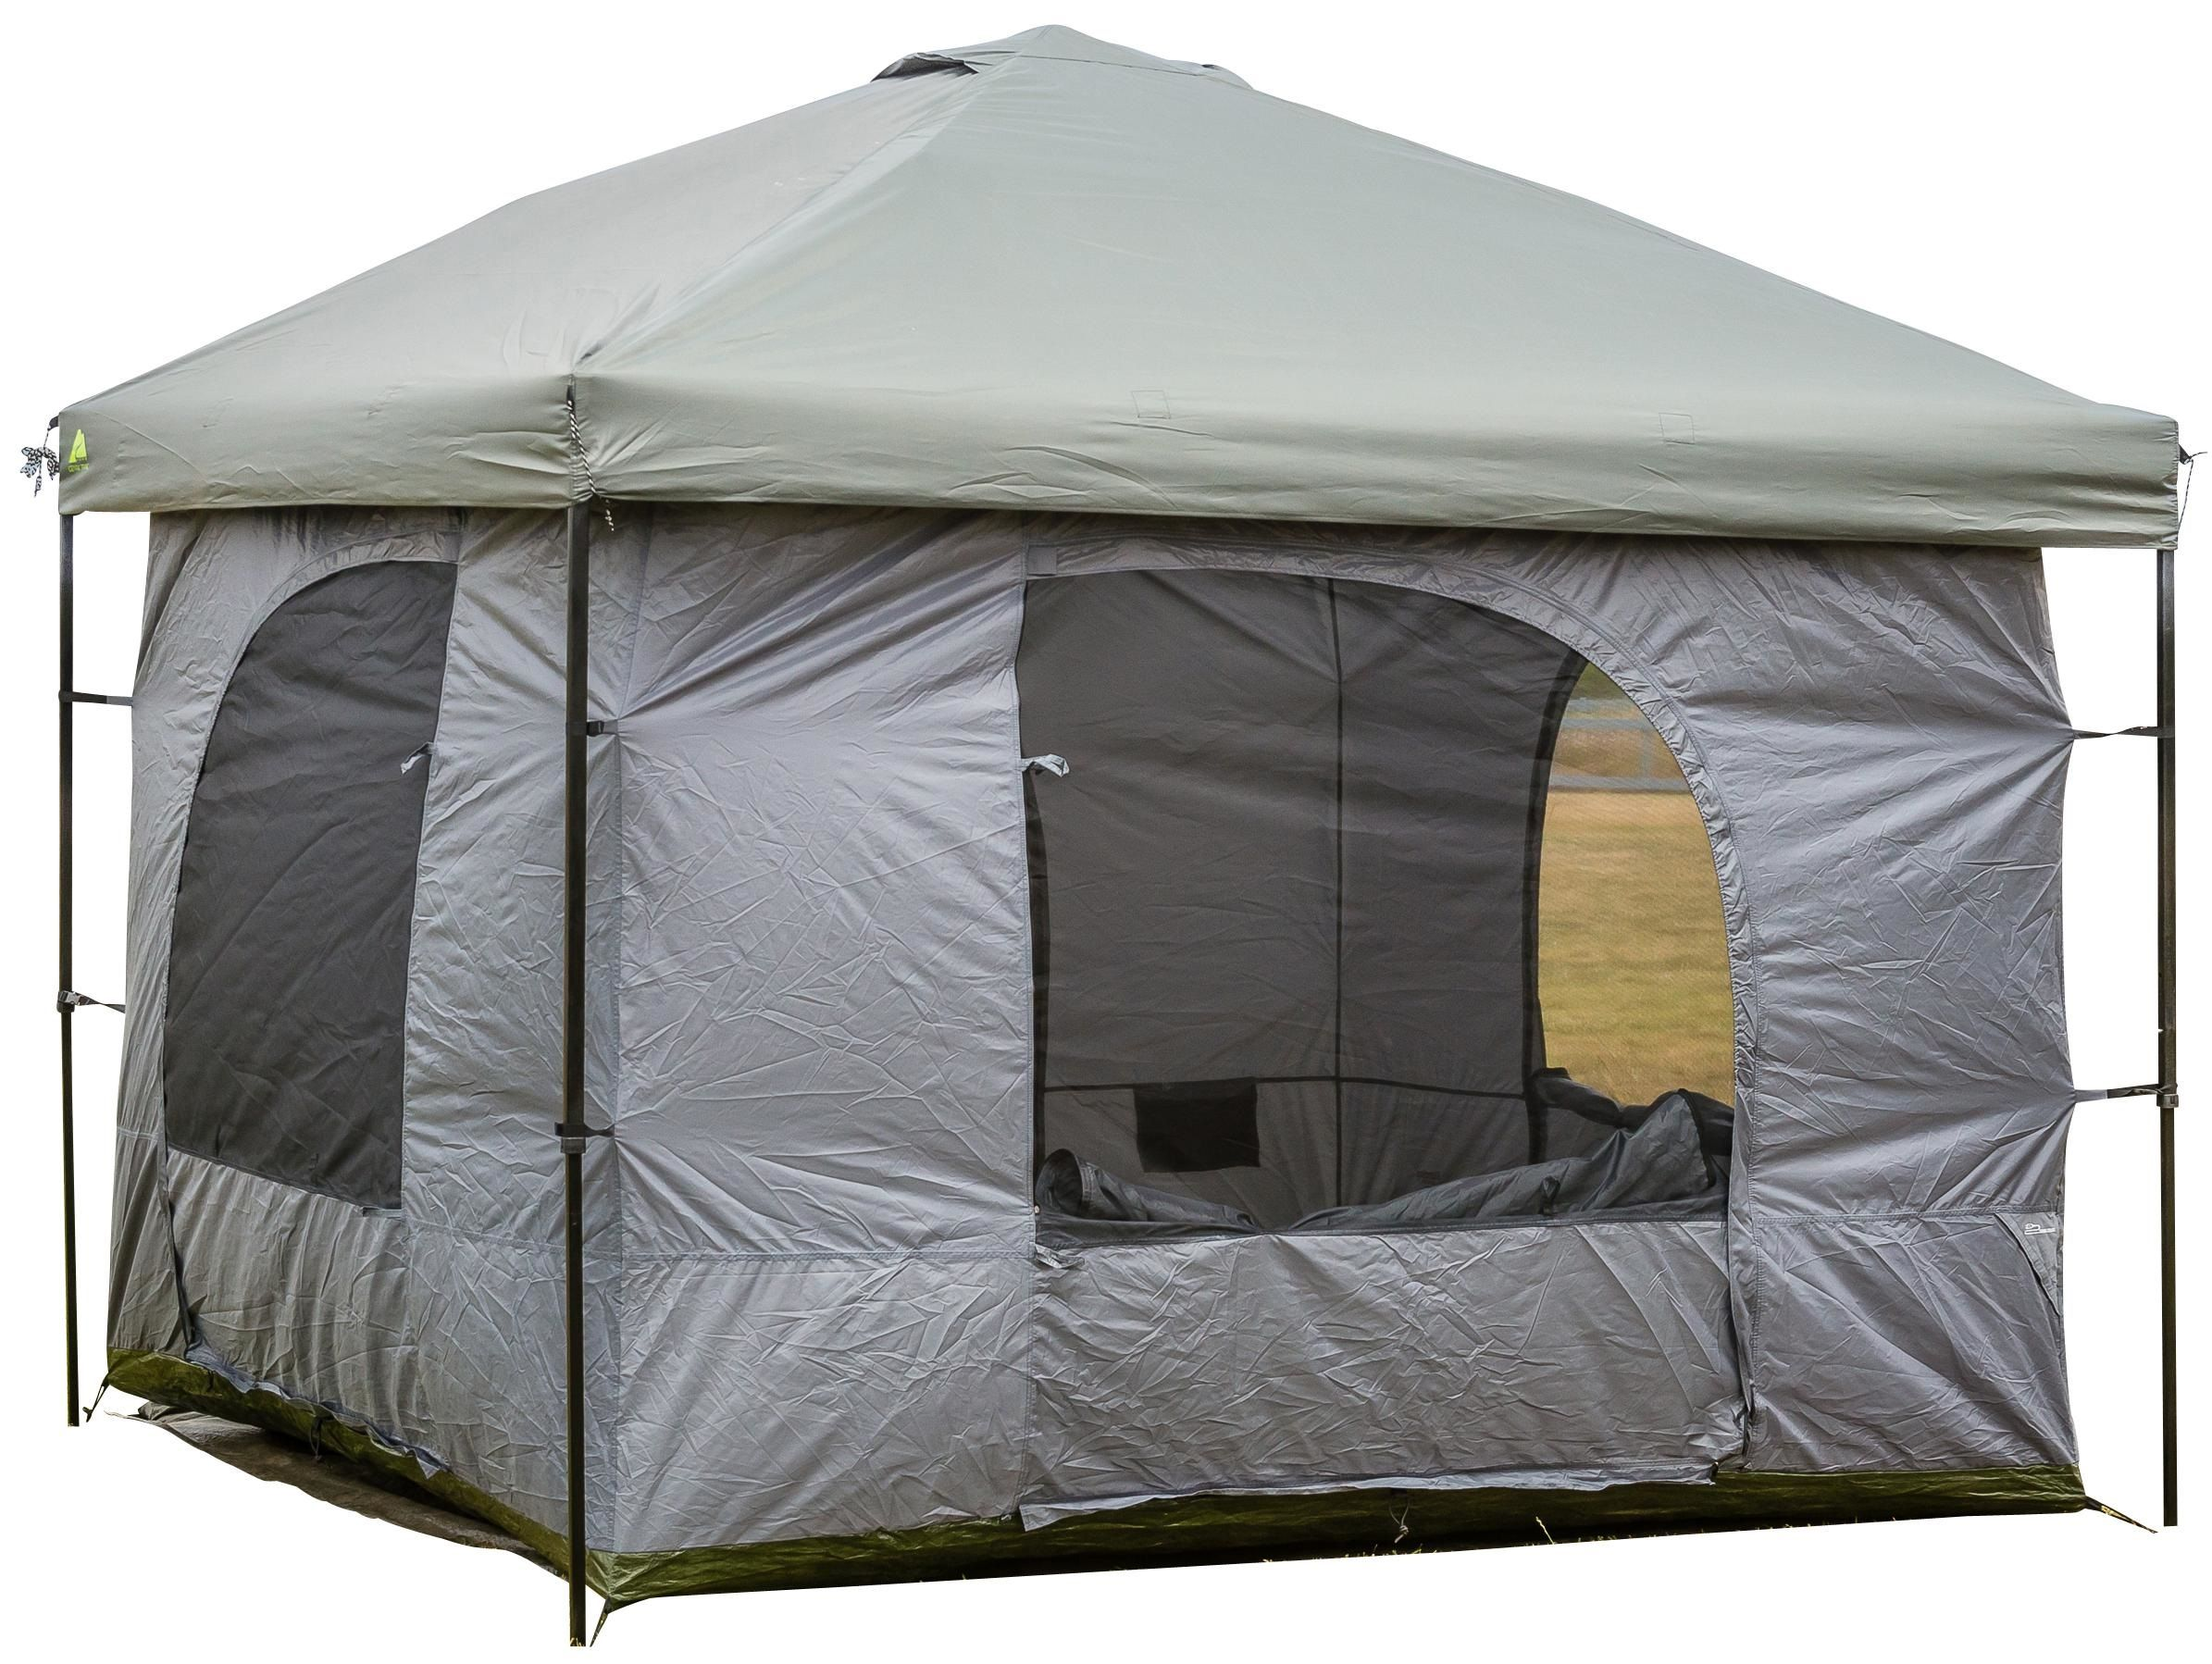 Standing Room 100 Family Cabin Camping Tent With Feet Of Head Room, 2 Big  Screen Doors Big Screen Doors With Grey XL), All Season Weather Proof  Fabric, Fast